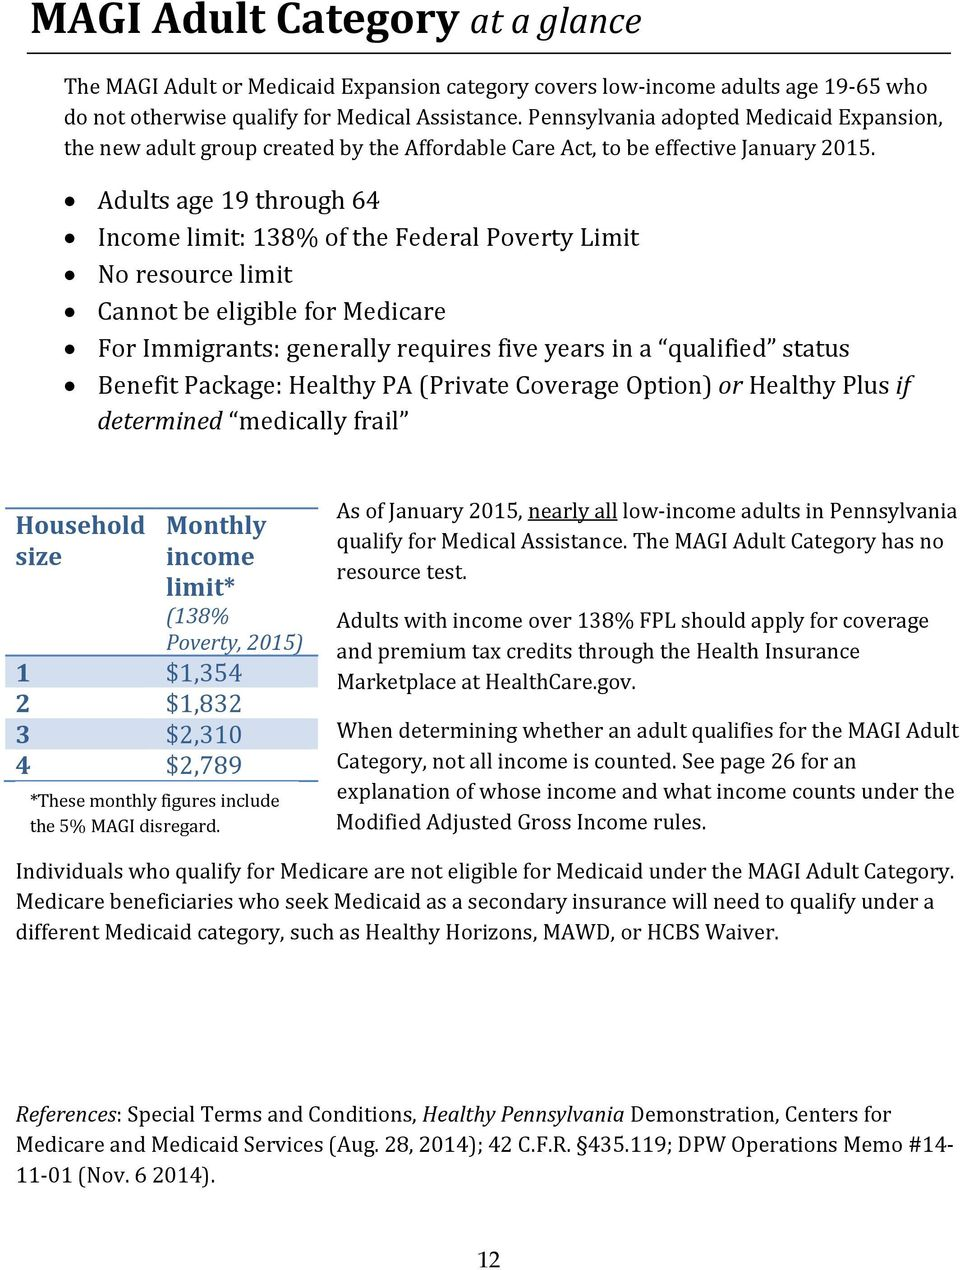 Adults age 19 through 64 Income limit: 138% of the Federal Poverty Limit No resource limit Cannot be eligible for Medicare For Immigrants: generally requires five years in a qualified status Benefit